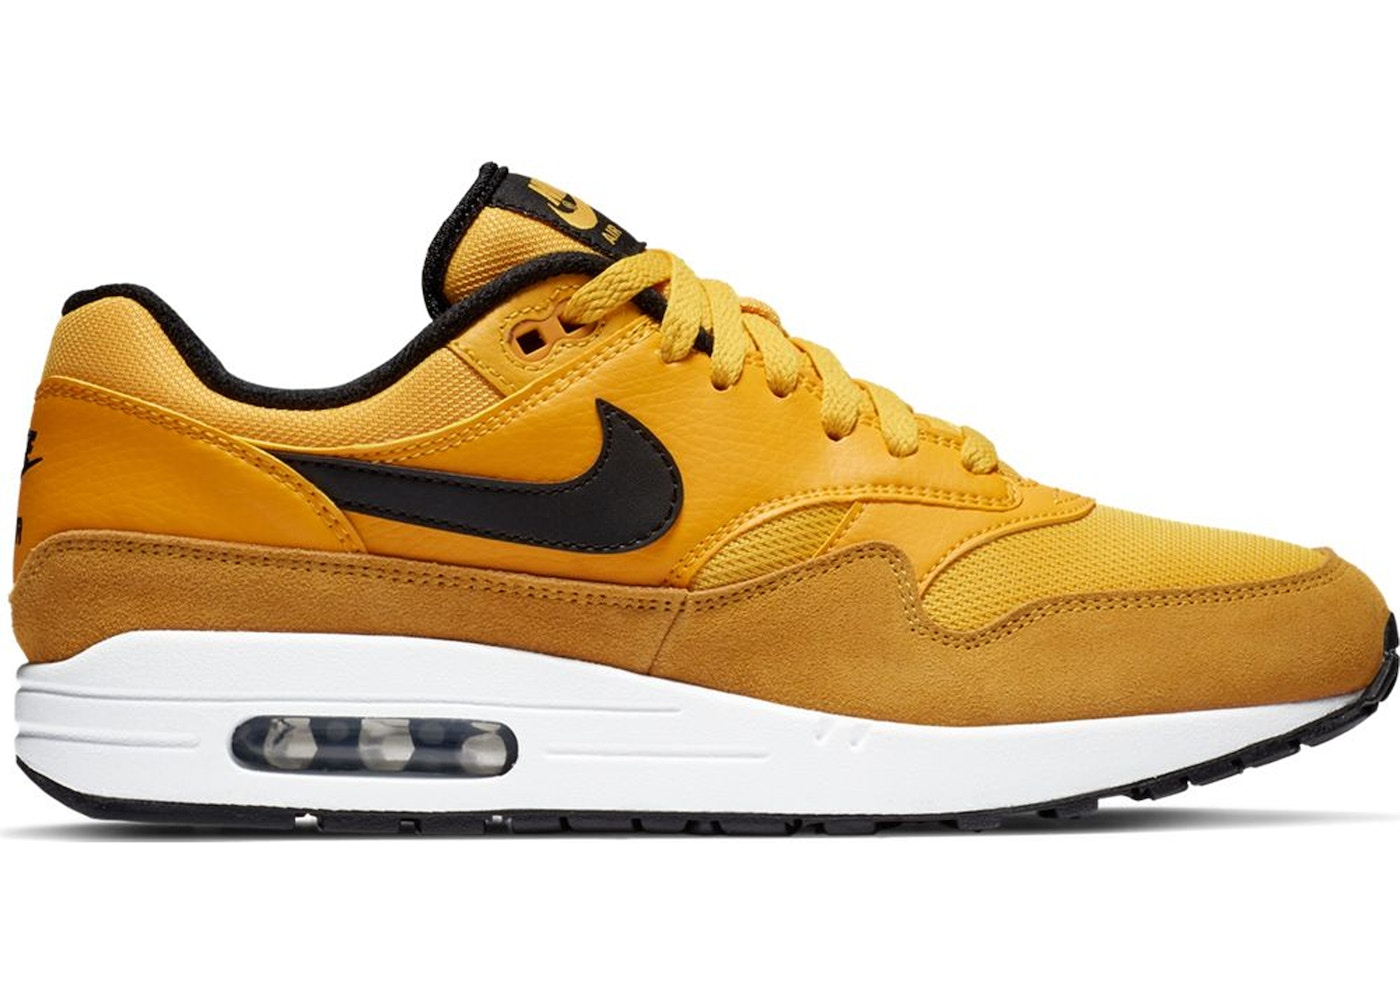 new style c0e45 3ba92 Buy Nike Air Max 1 Shoes   Deadstock Sneakers